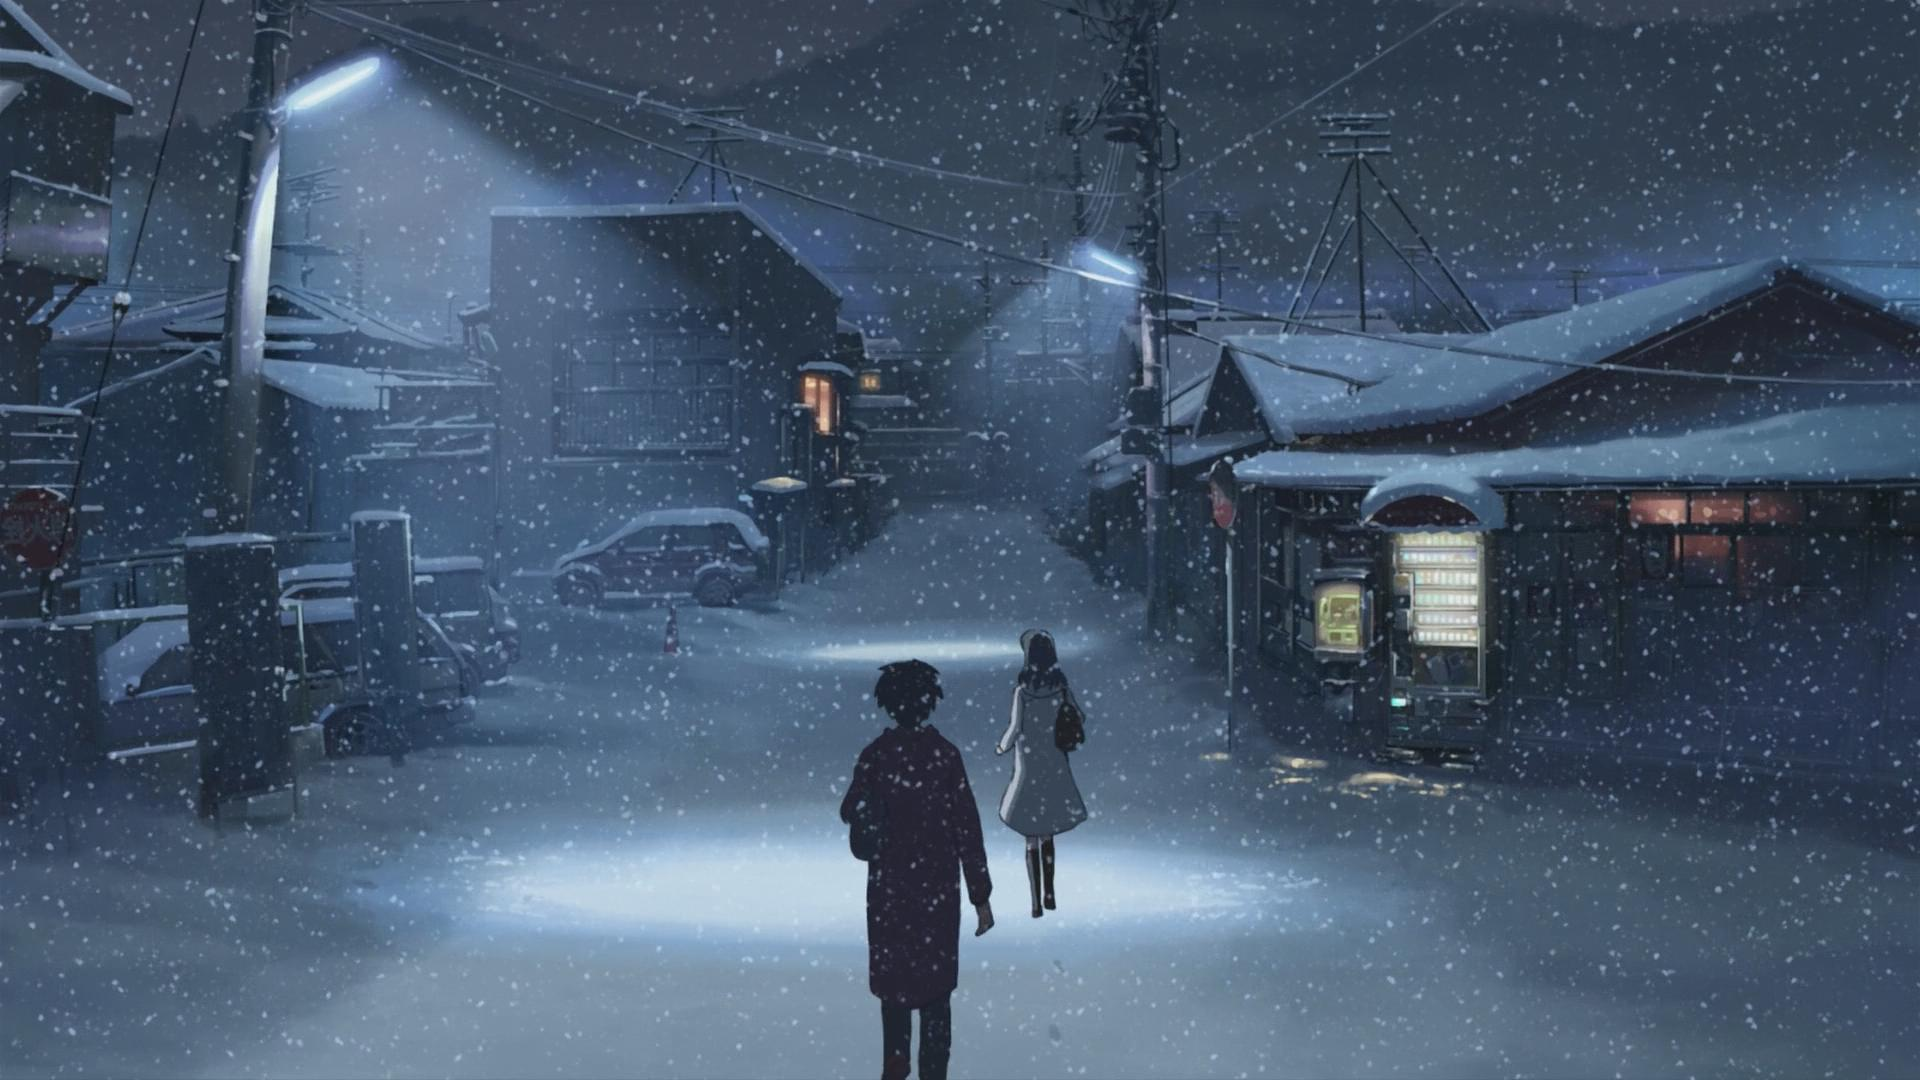 anime winter desktop wallpaper 73466